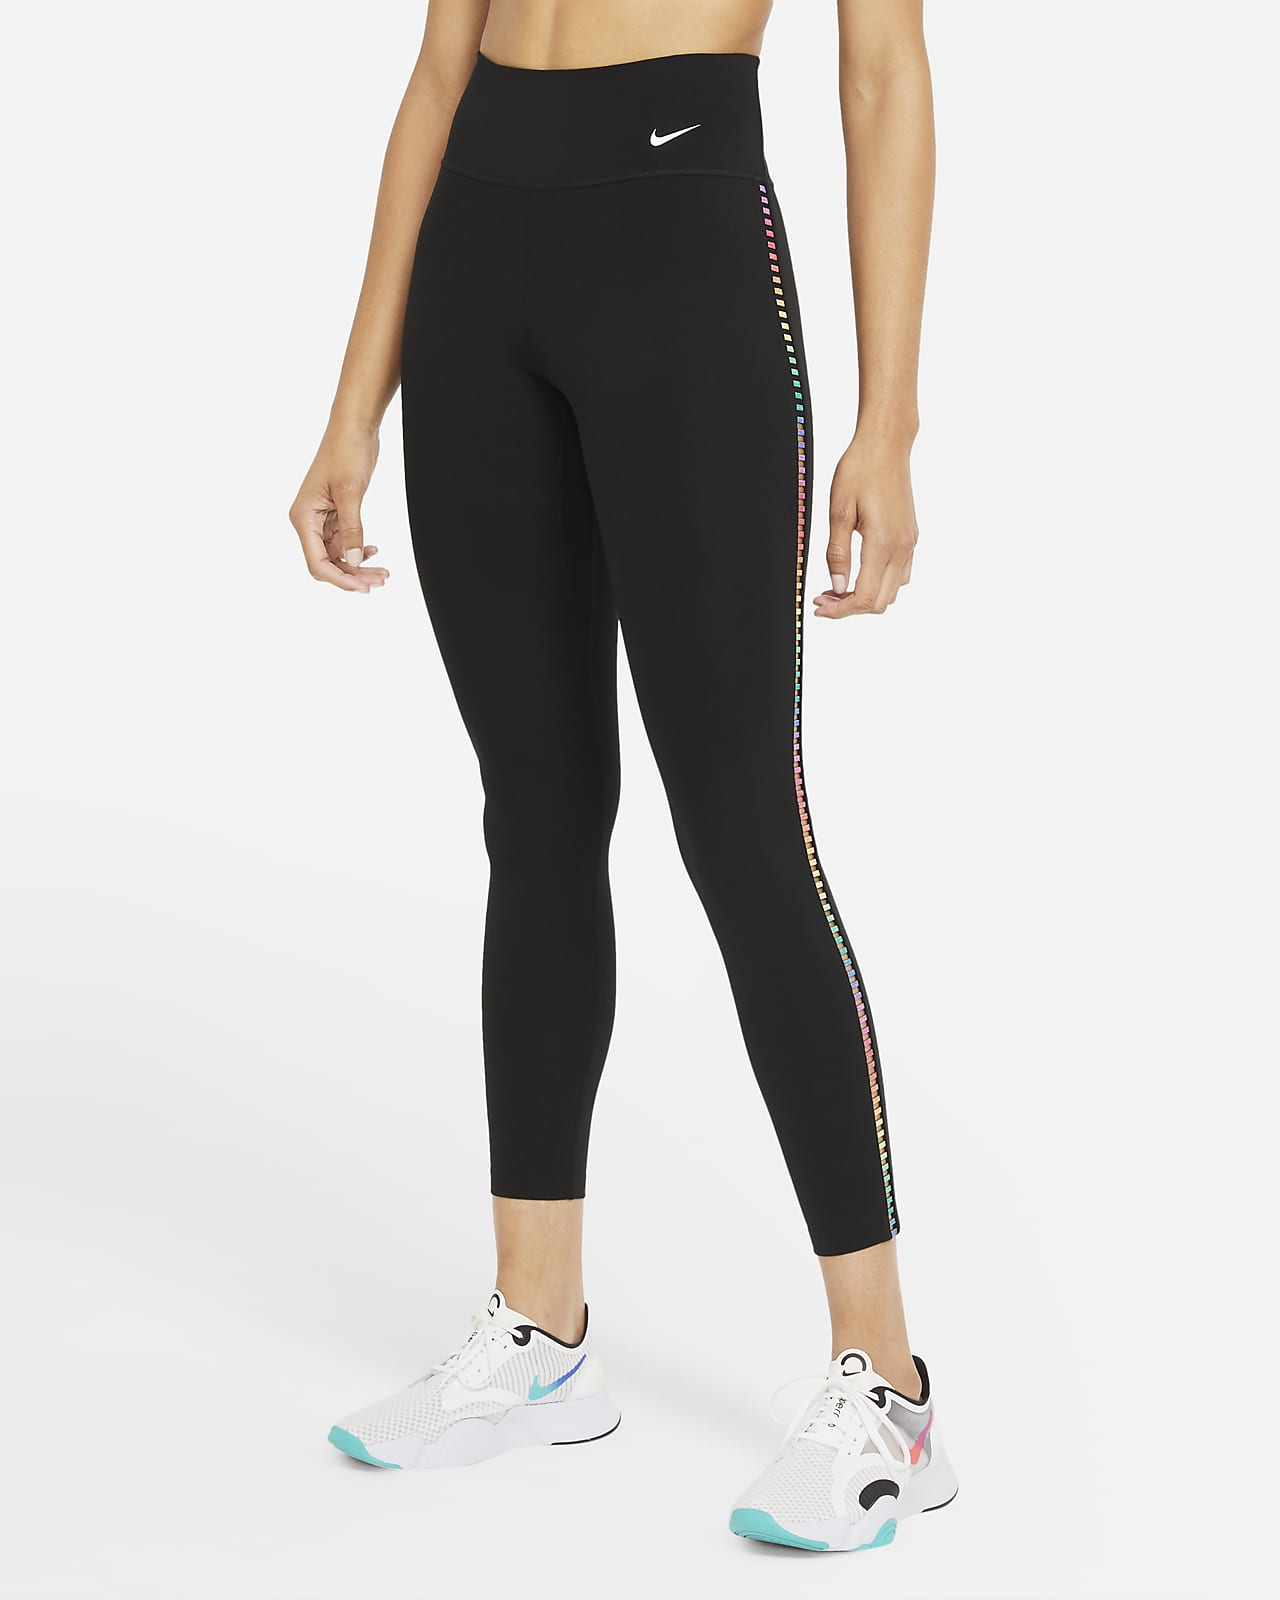 Nike One Rainbow Ladder-7/8-leggings til kvinder